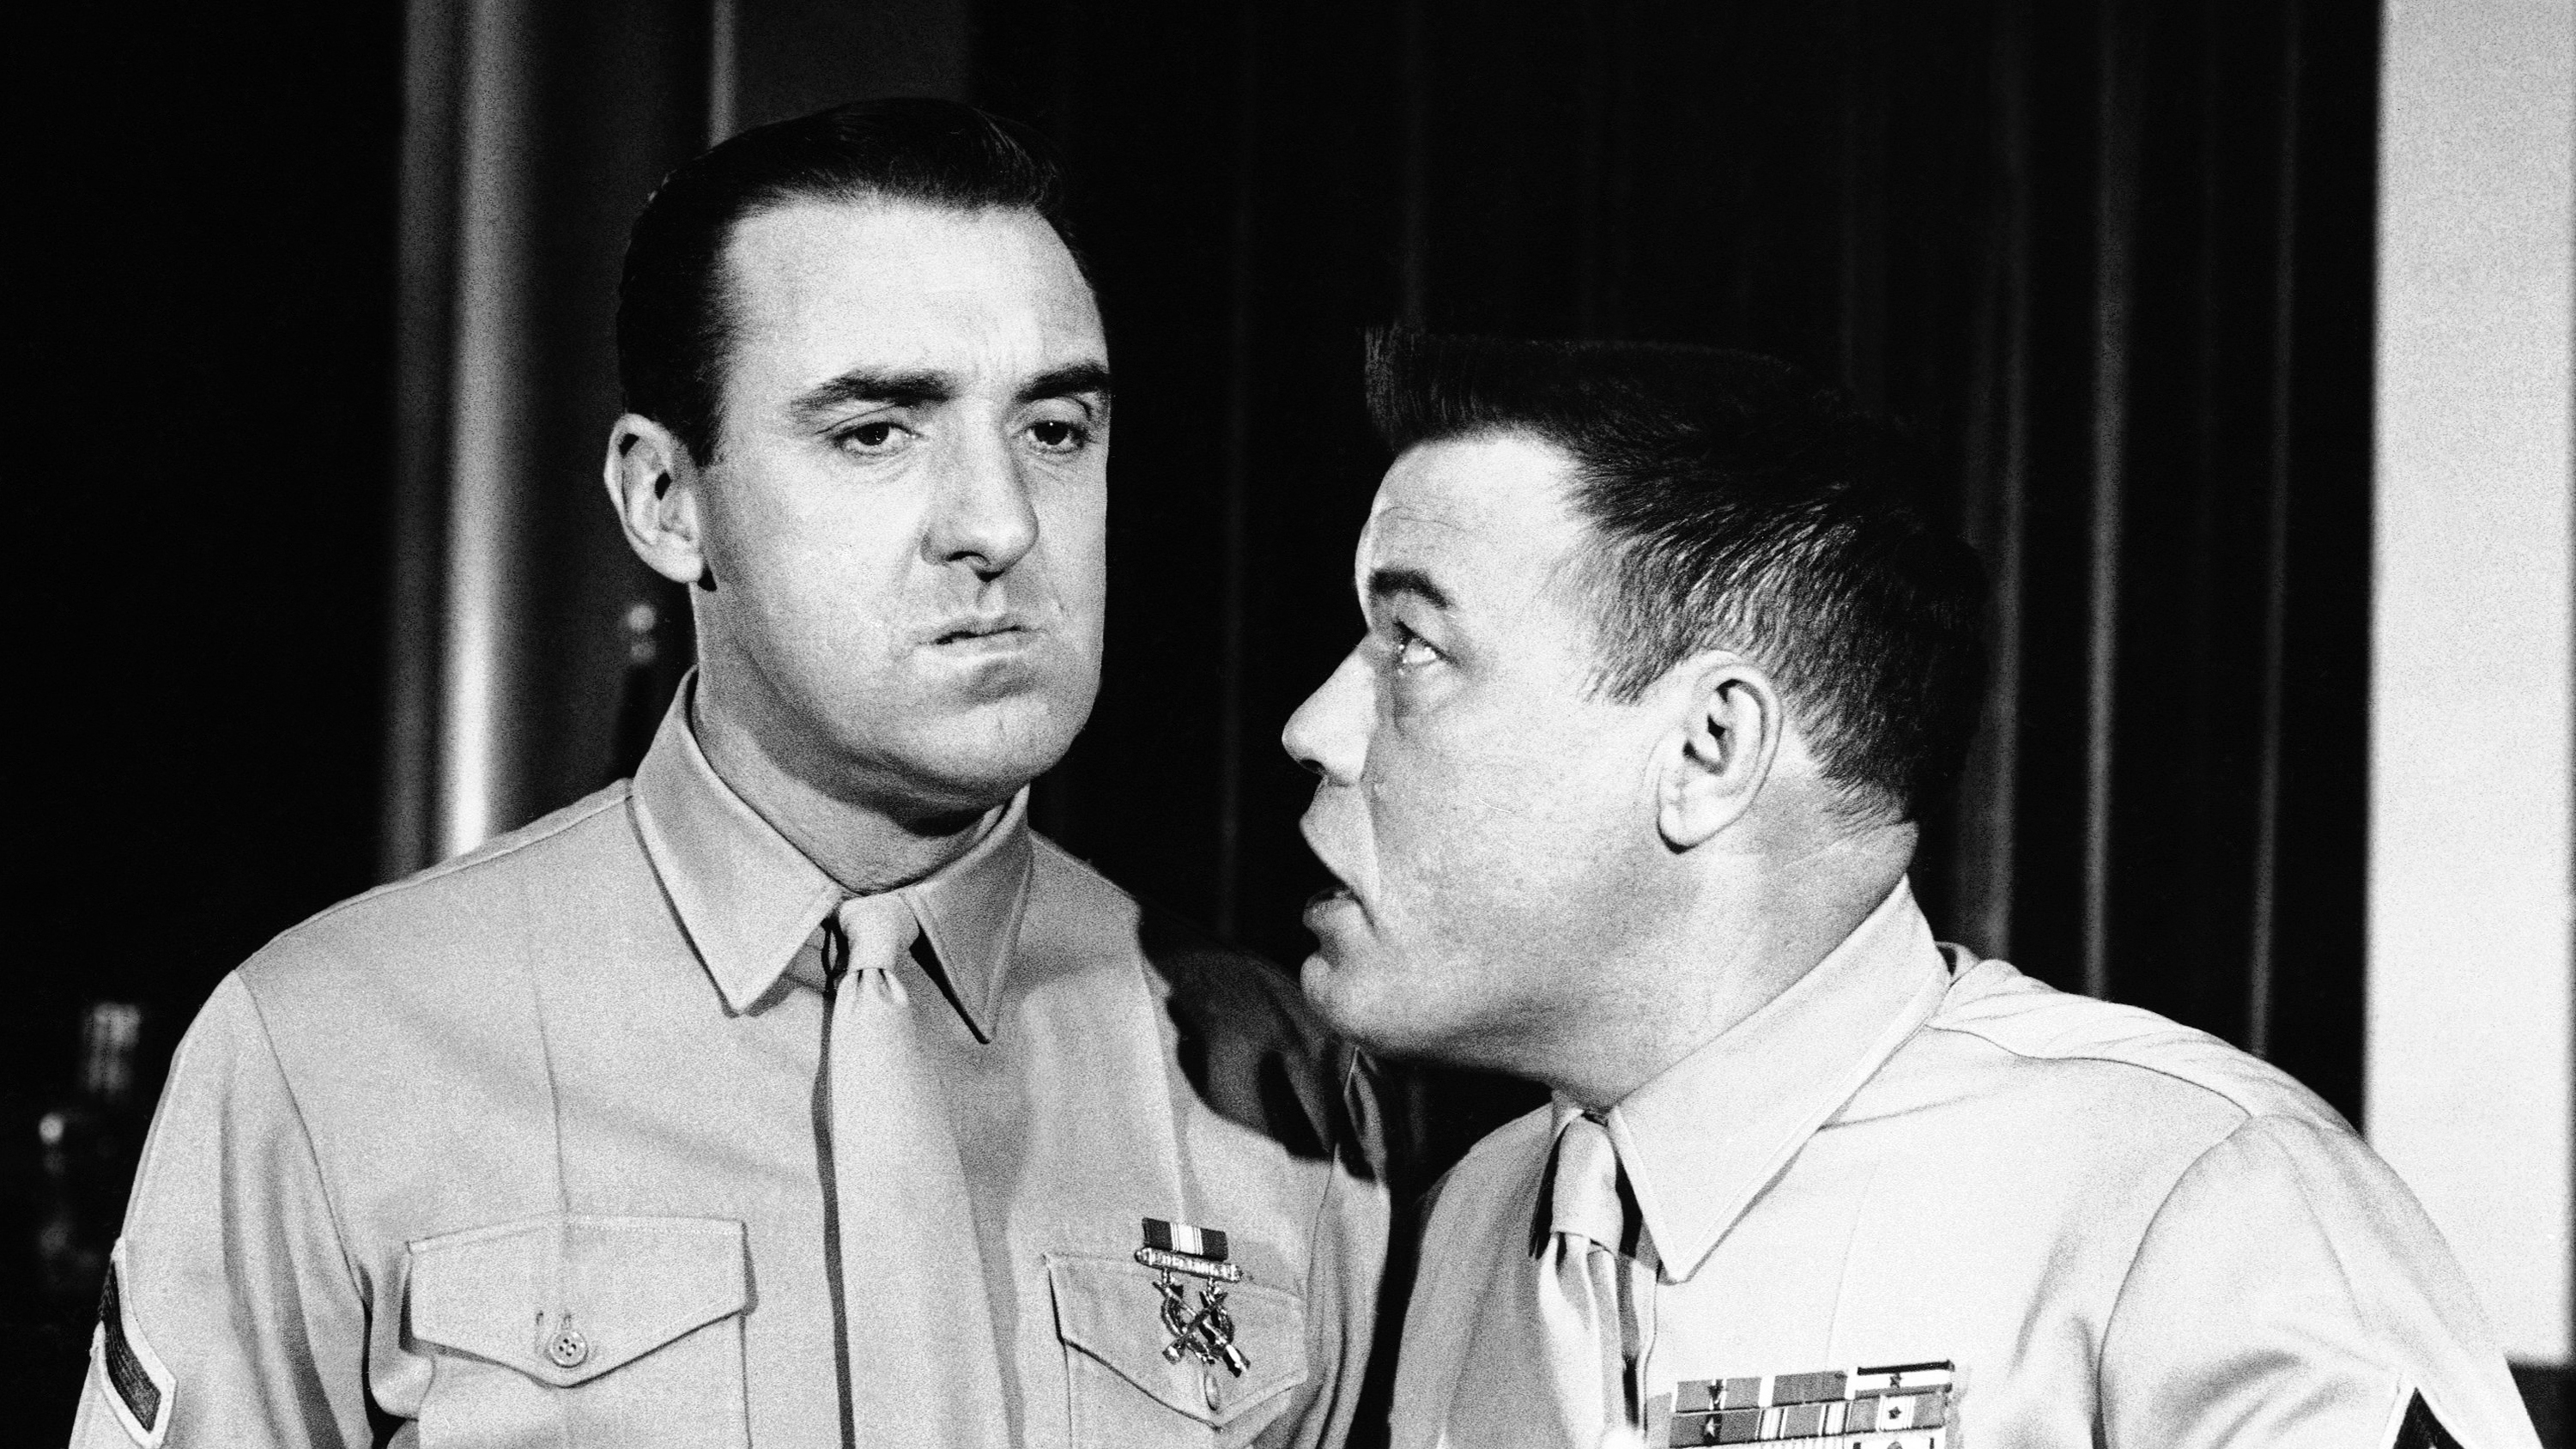 Jim Nabors Who Played Affable Klutz Gomer Pyle Dies At 87 The Two Way Npr Stan has a net worth of around $15 million. npr